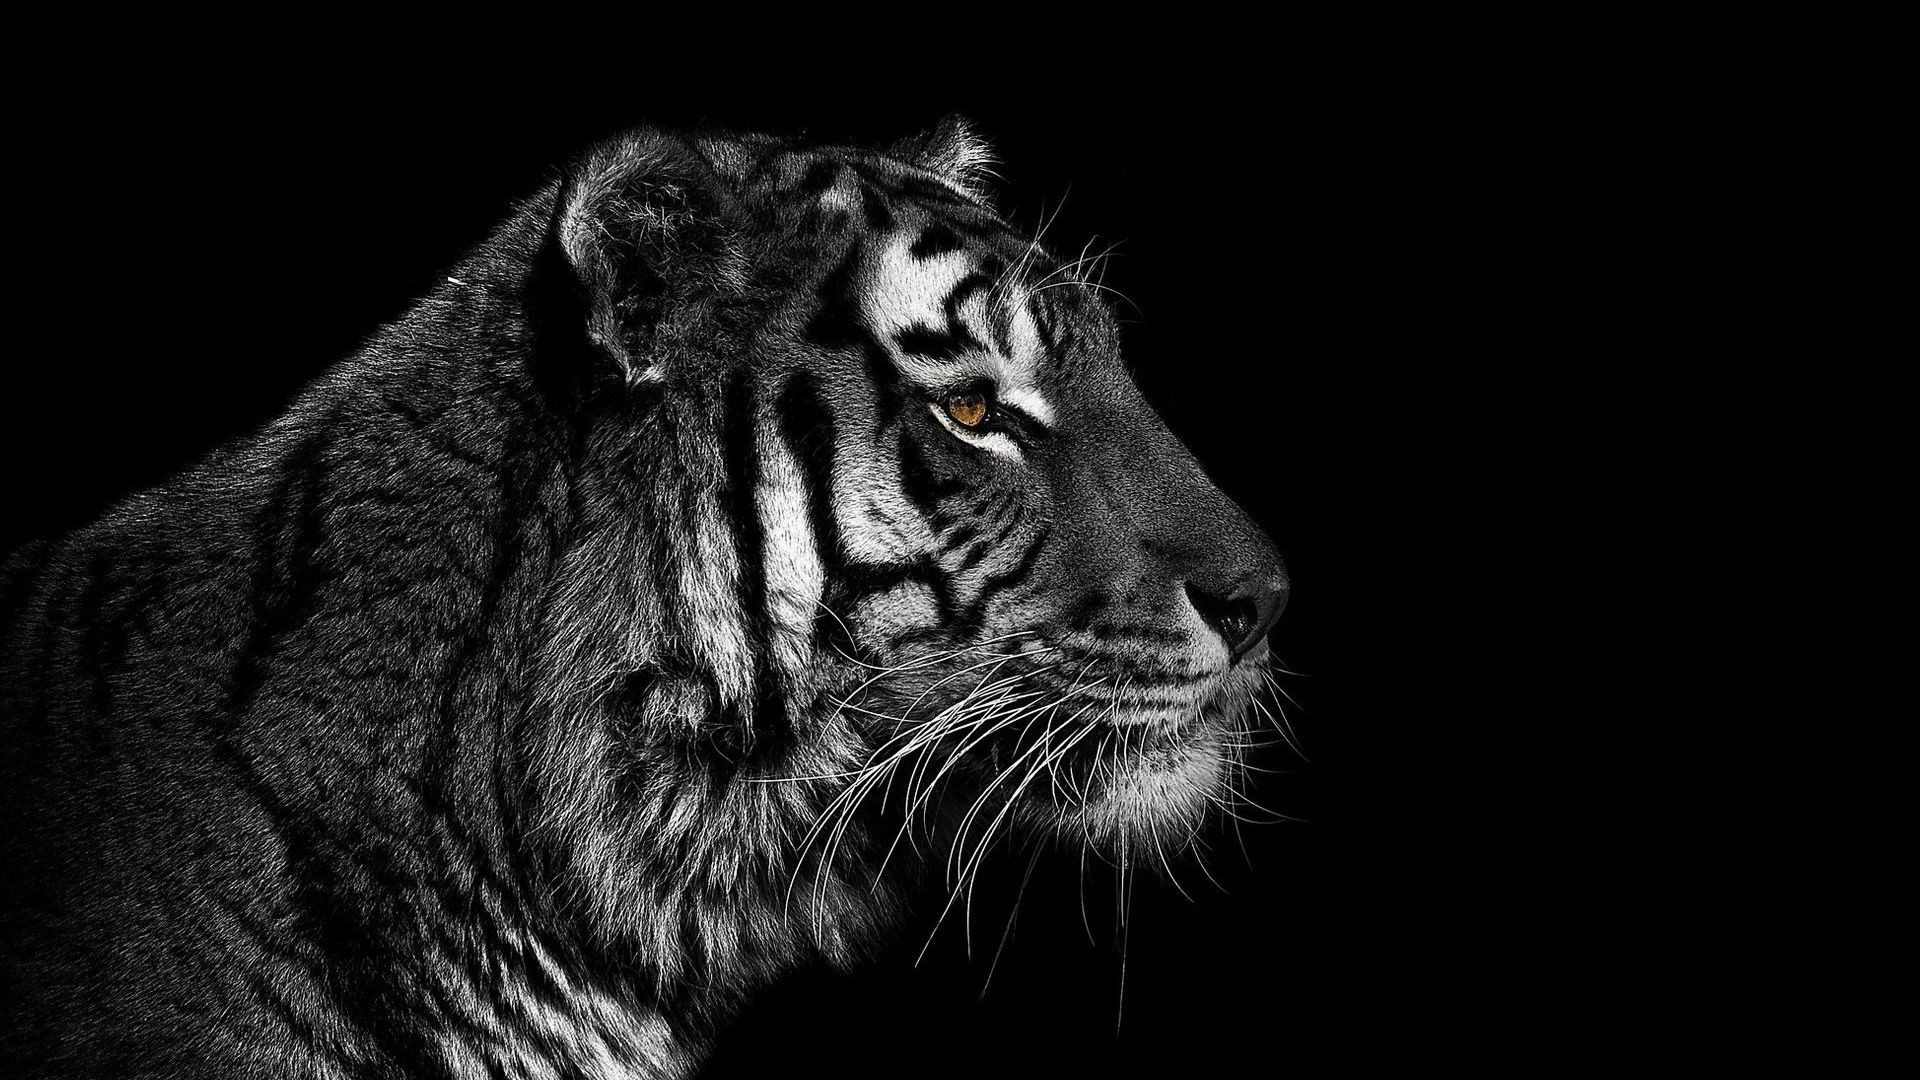 3d Ghost Wallpaper Free Download Black And White Tiger Wallpaper 60